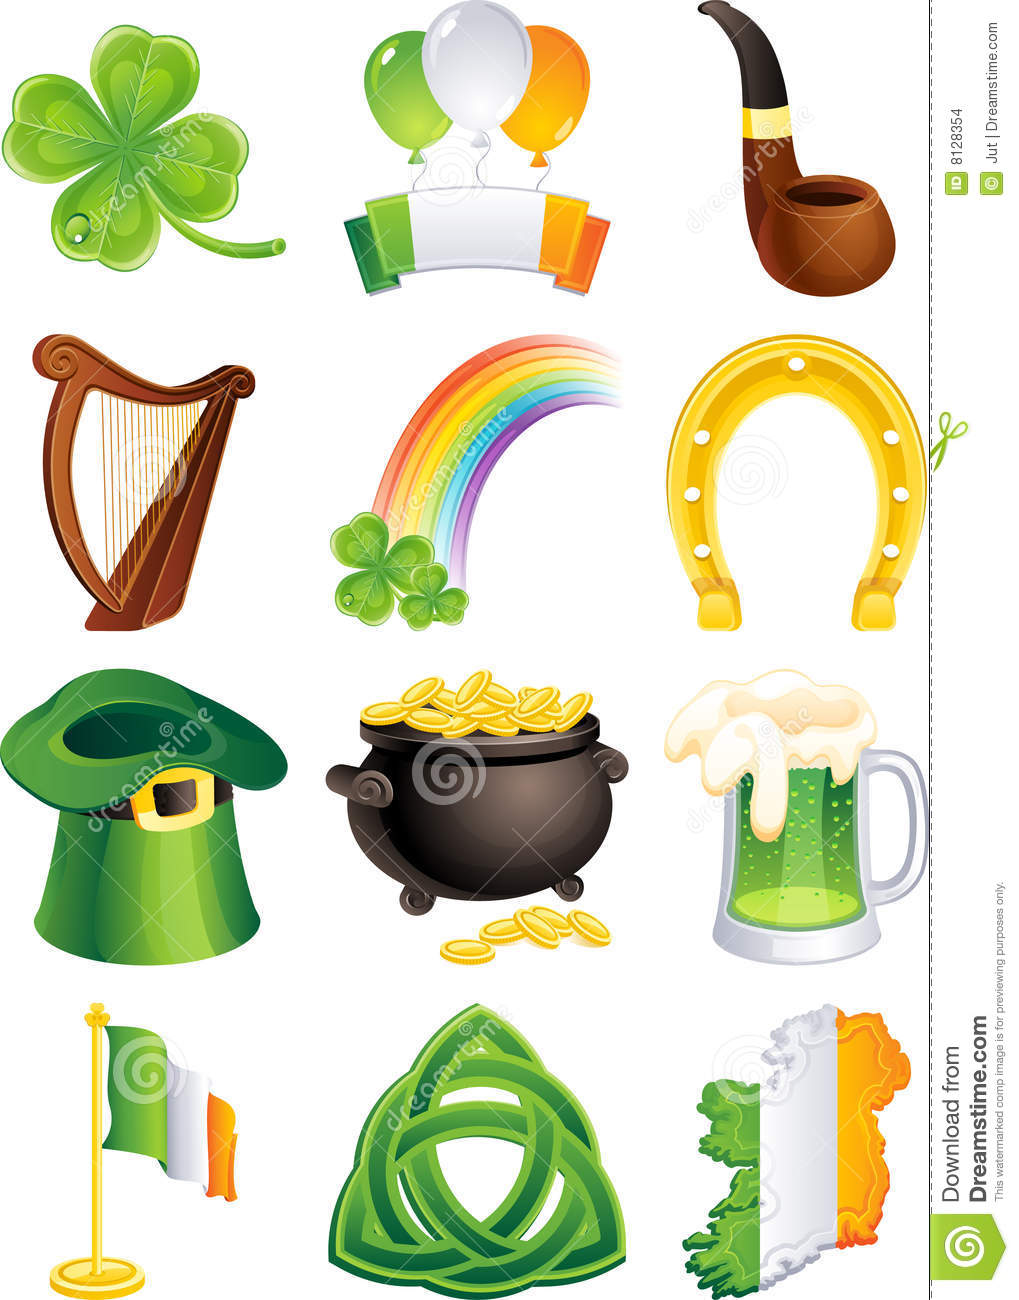 St. Patrick's Icon Stock Images - Image: 8128354